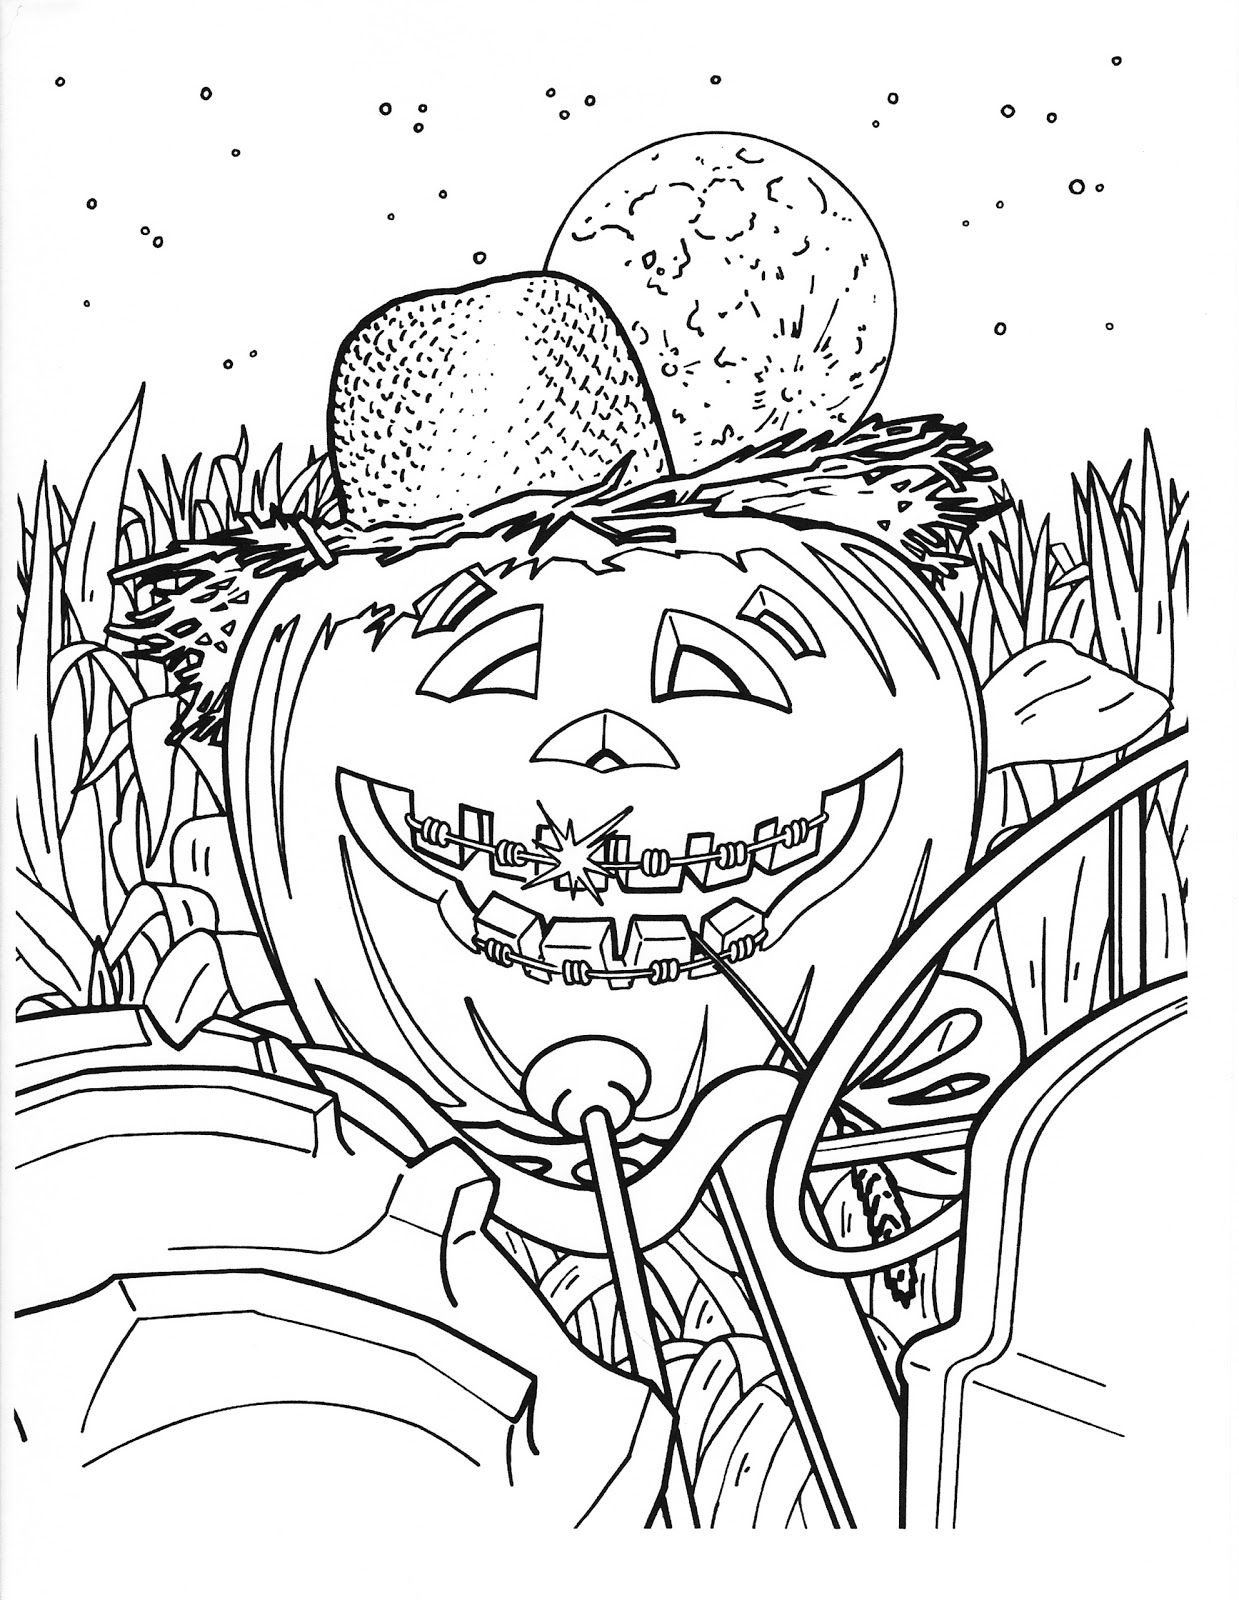 Hard Halloween Colouring Pages Fall Coloring Pages Halloween Coloring Pages Pumpkin Coloring Pages